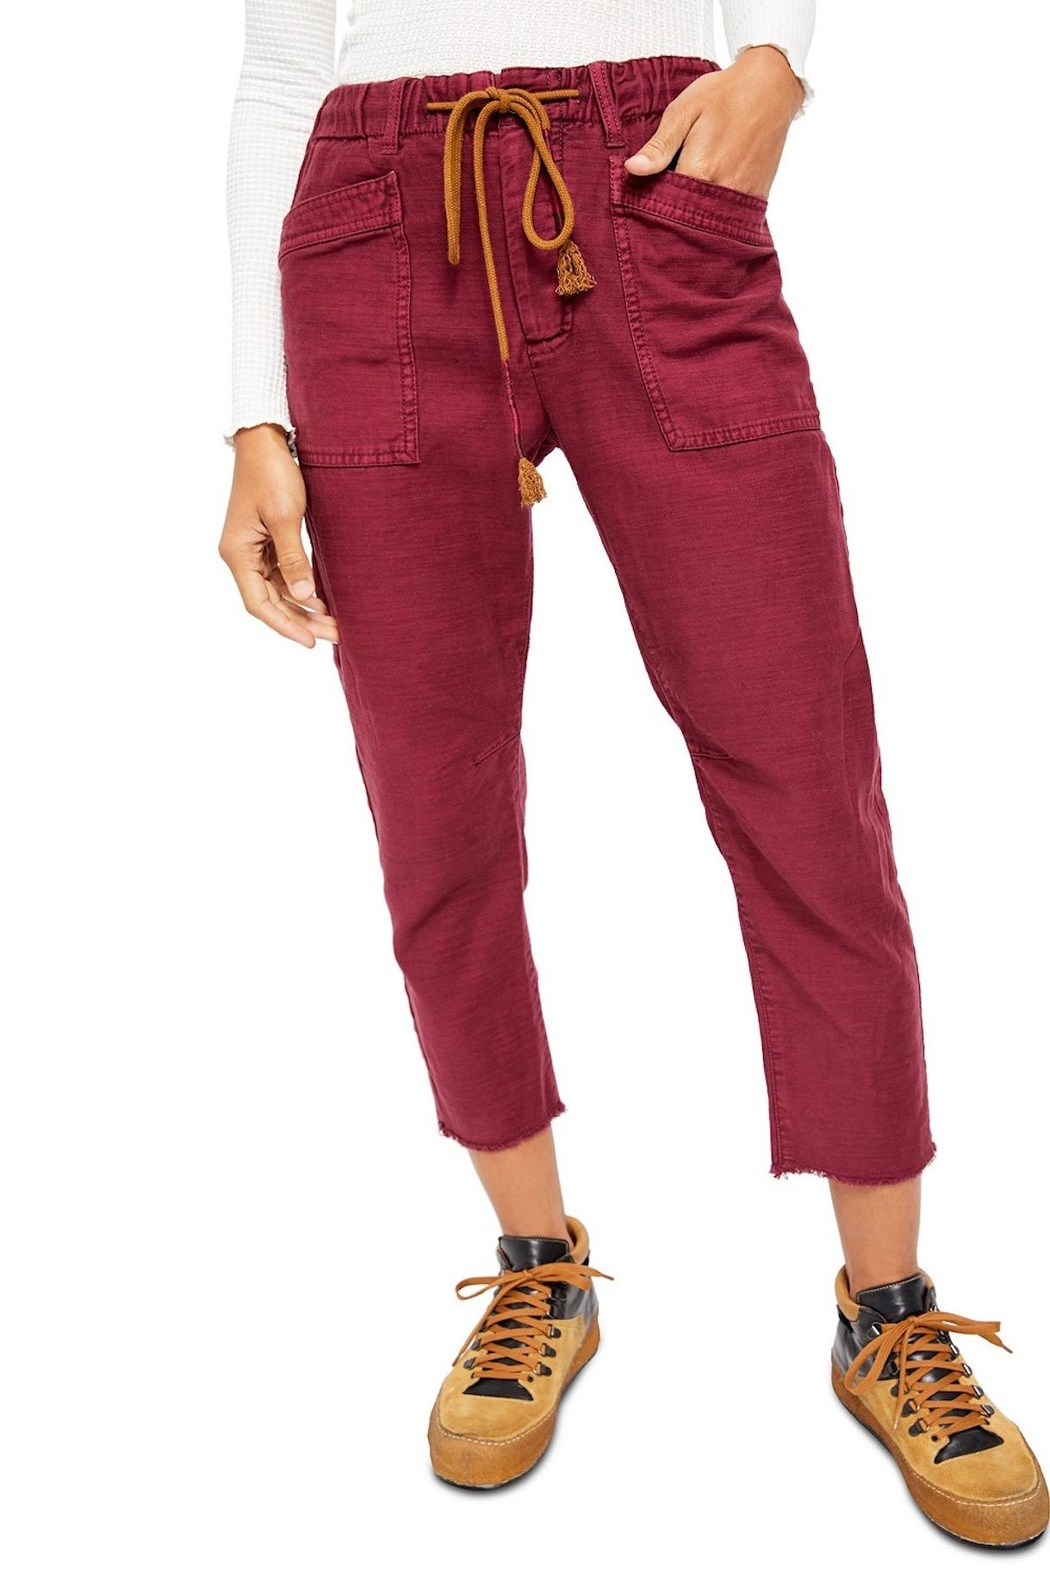 Free People Fp Boyfriend Pant - Main Image